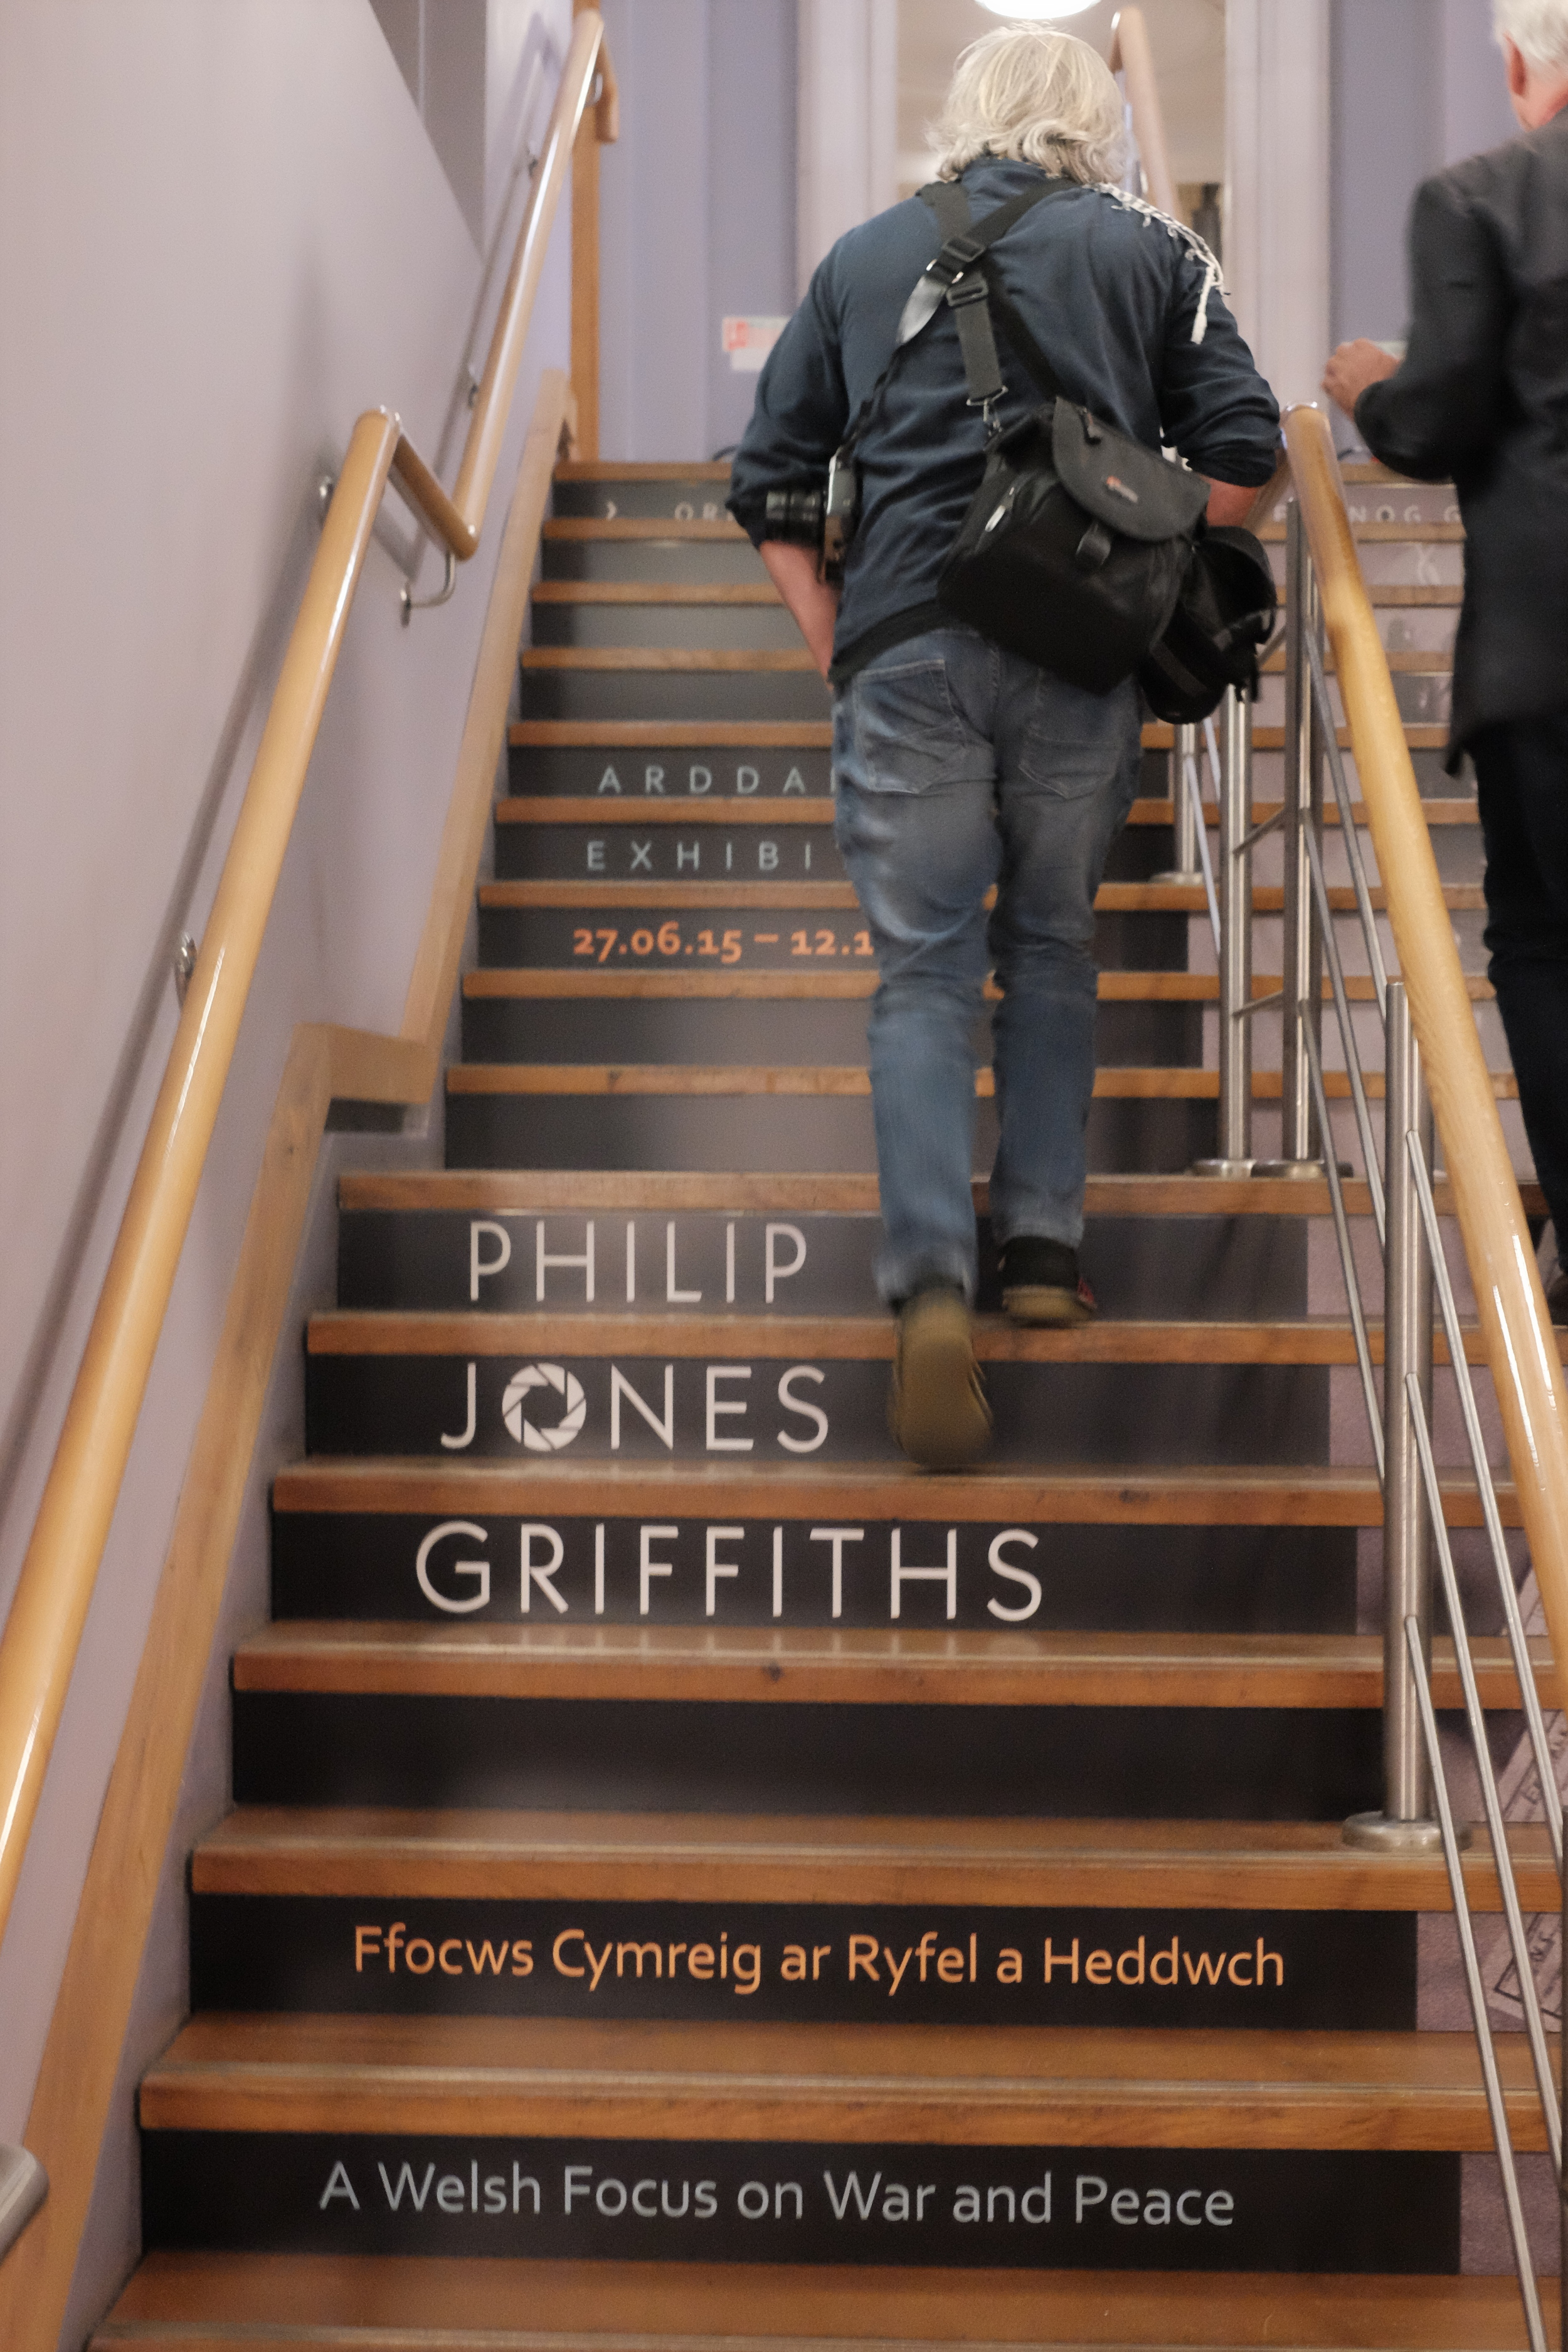 Making our way to the Philip Jones Griffiths exhibition in the National Library of Wales